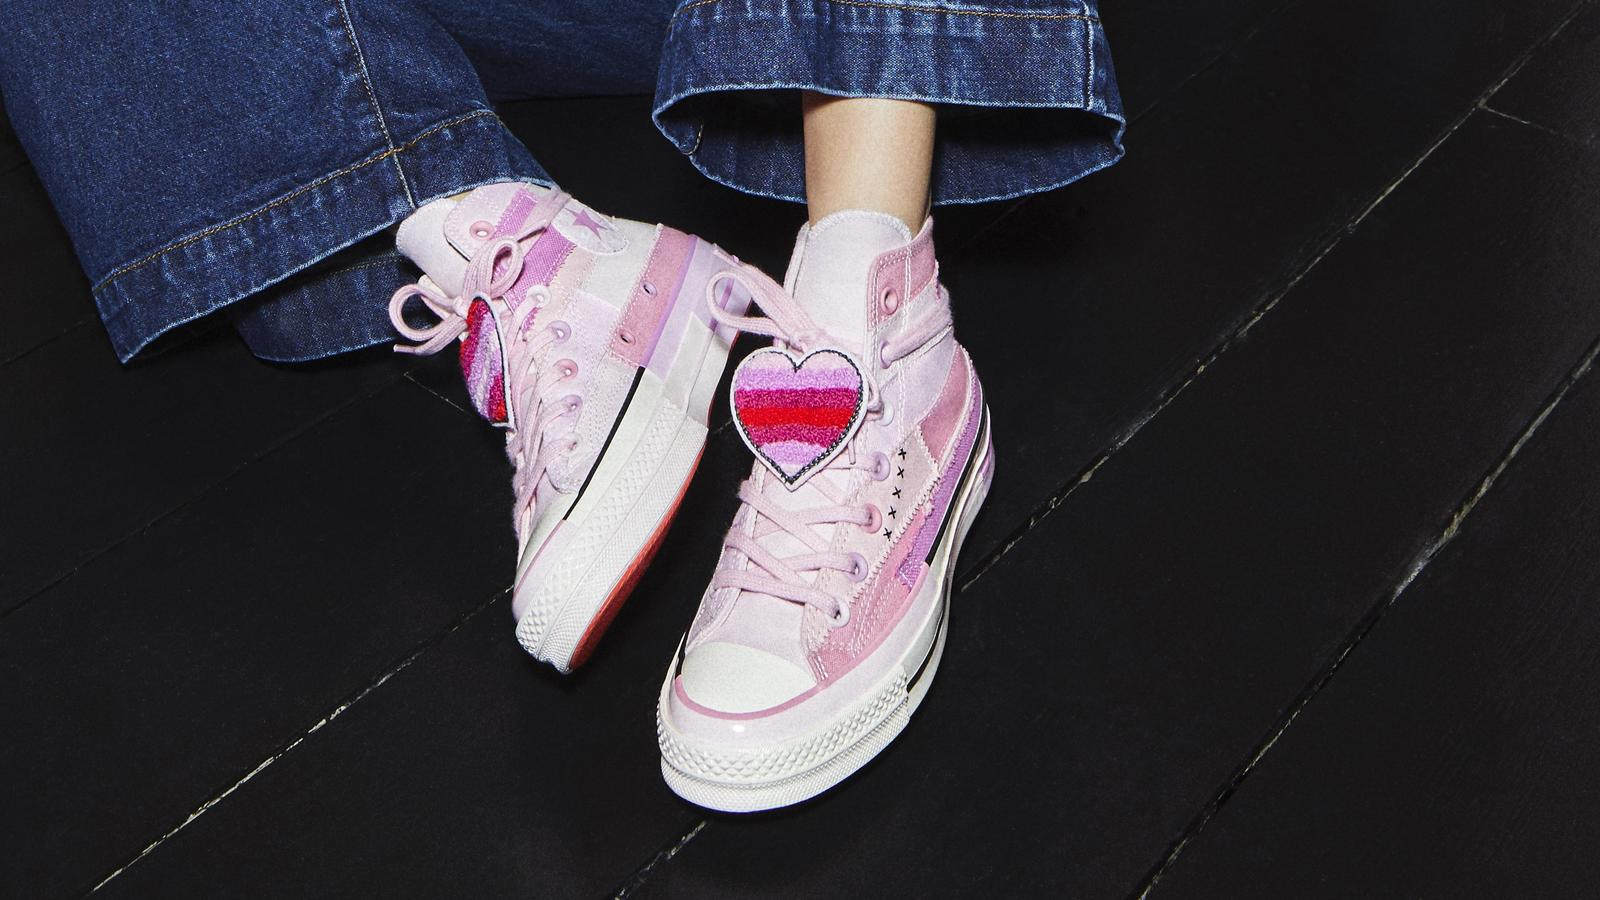 Converse x Millie Bobby Brown Chuck Taylor Chuck 70 4